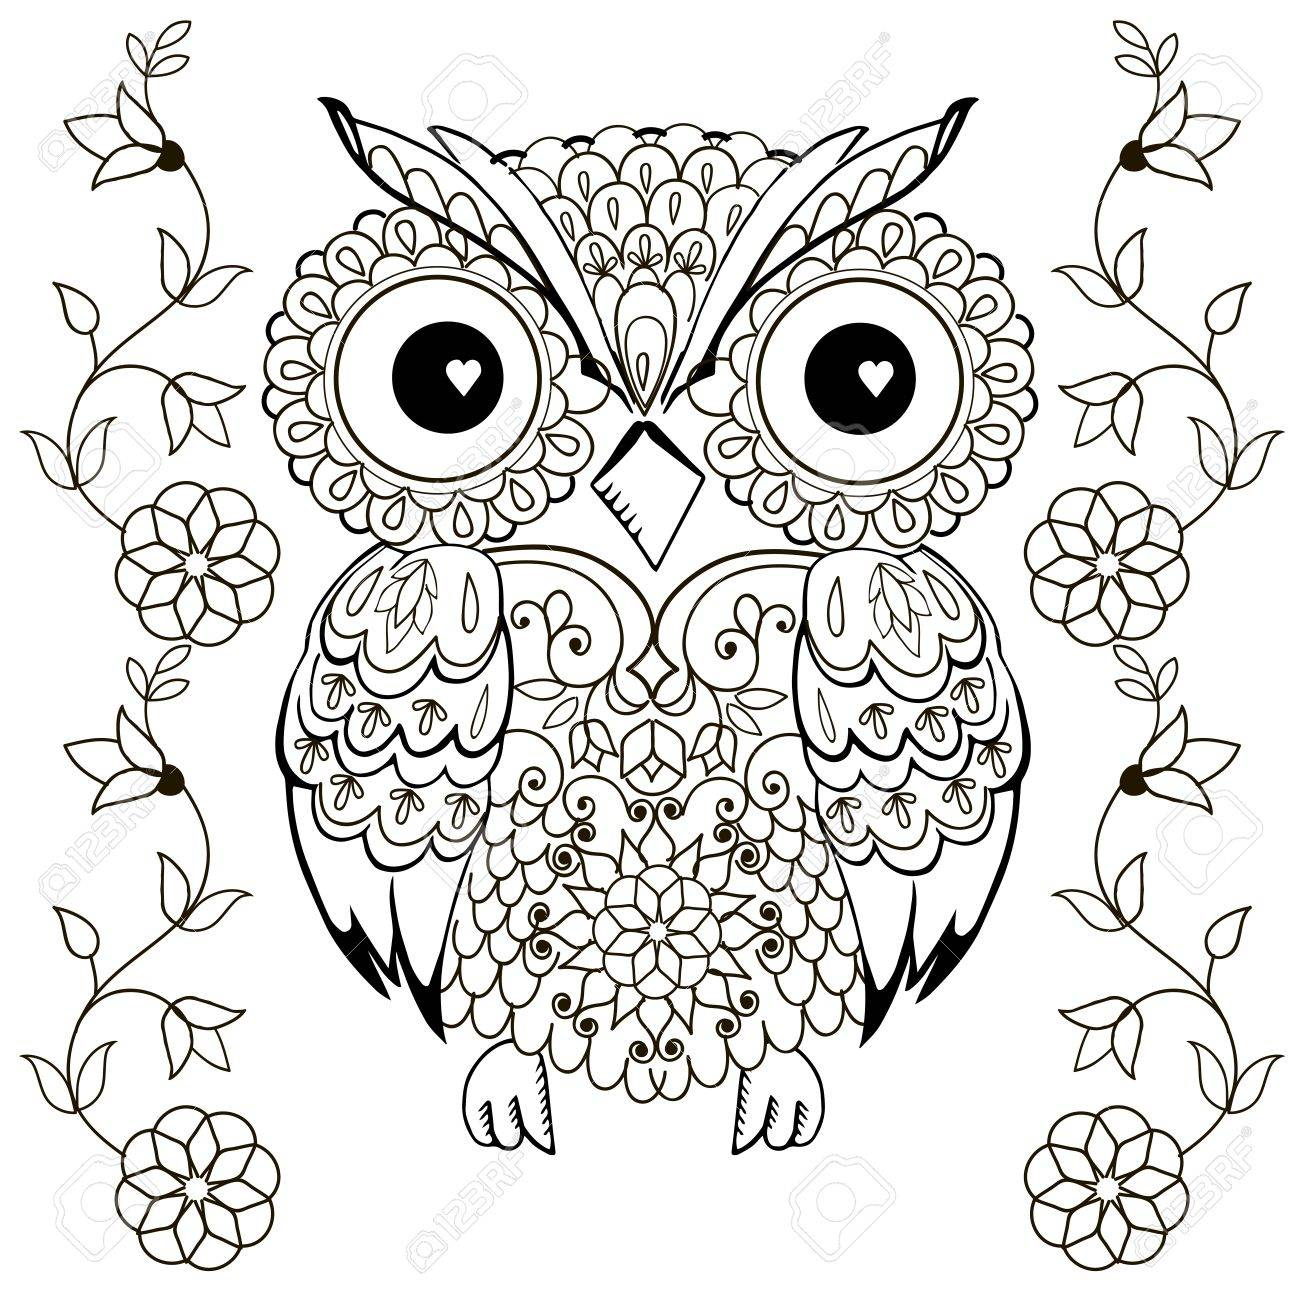 Owl drawing for coloring antistress stock vector 65790474